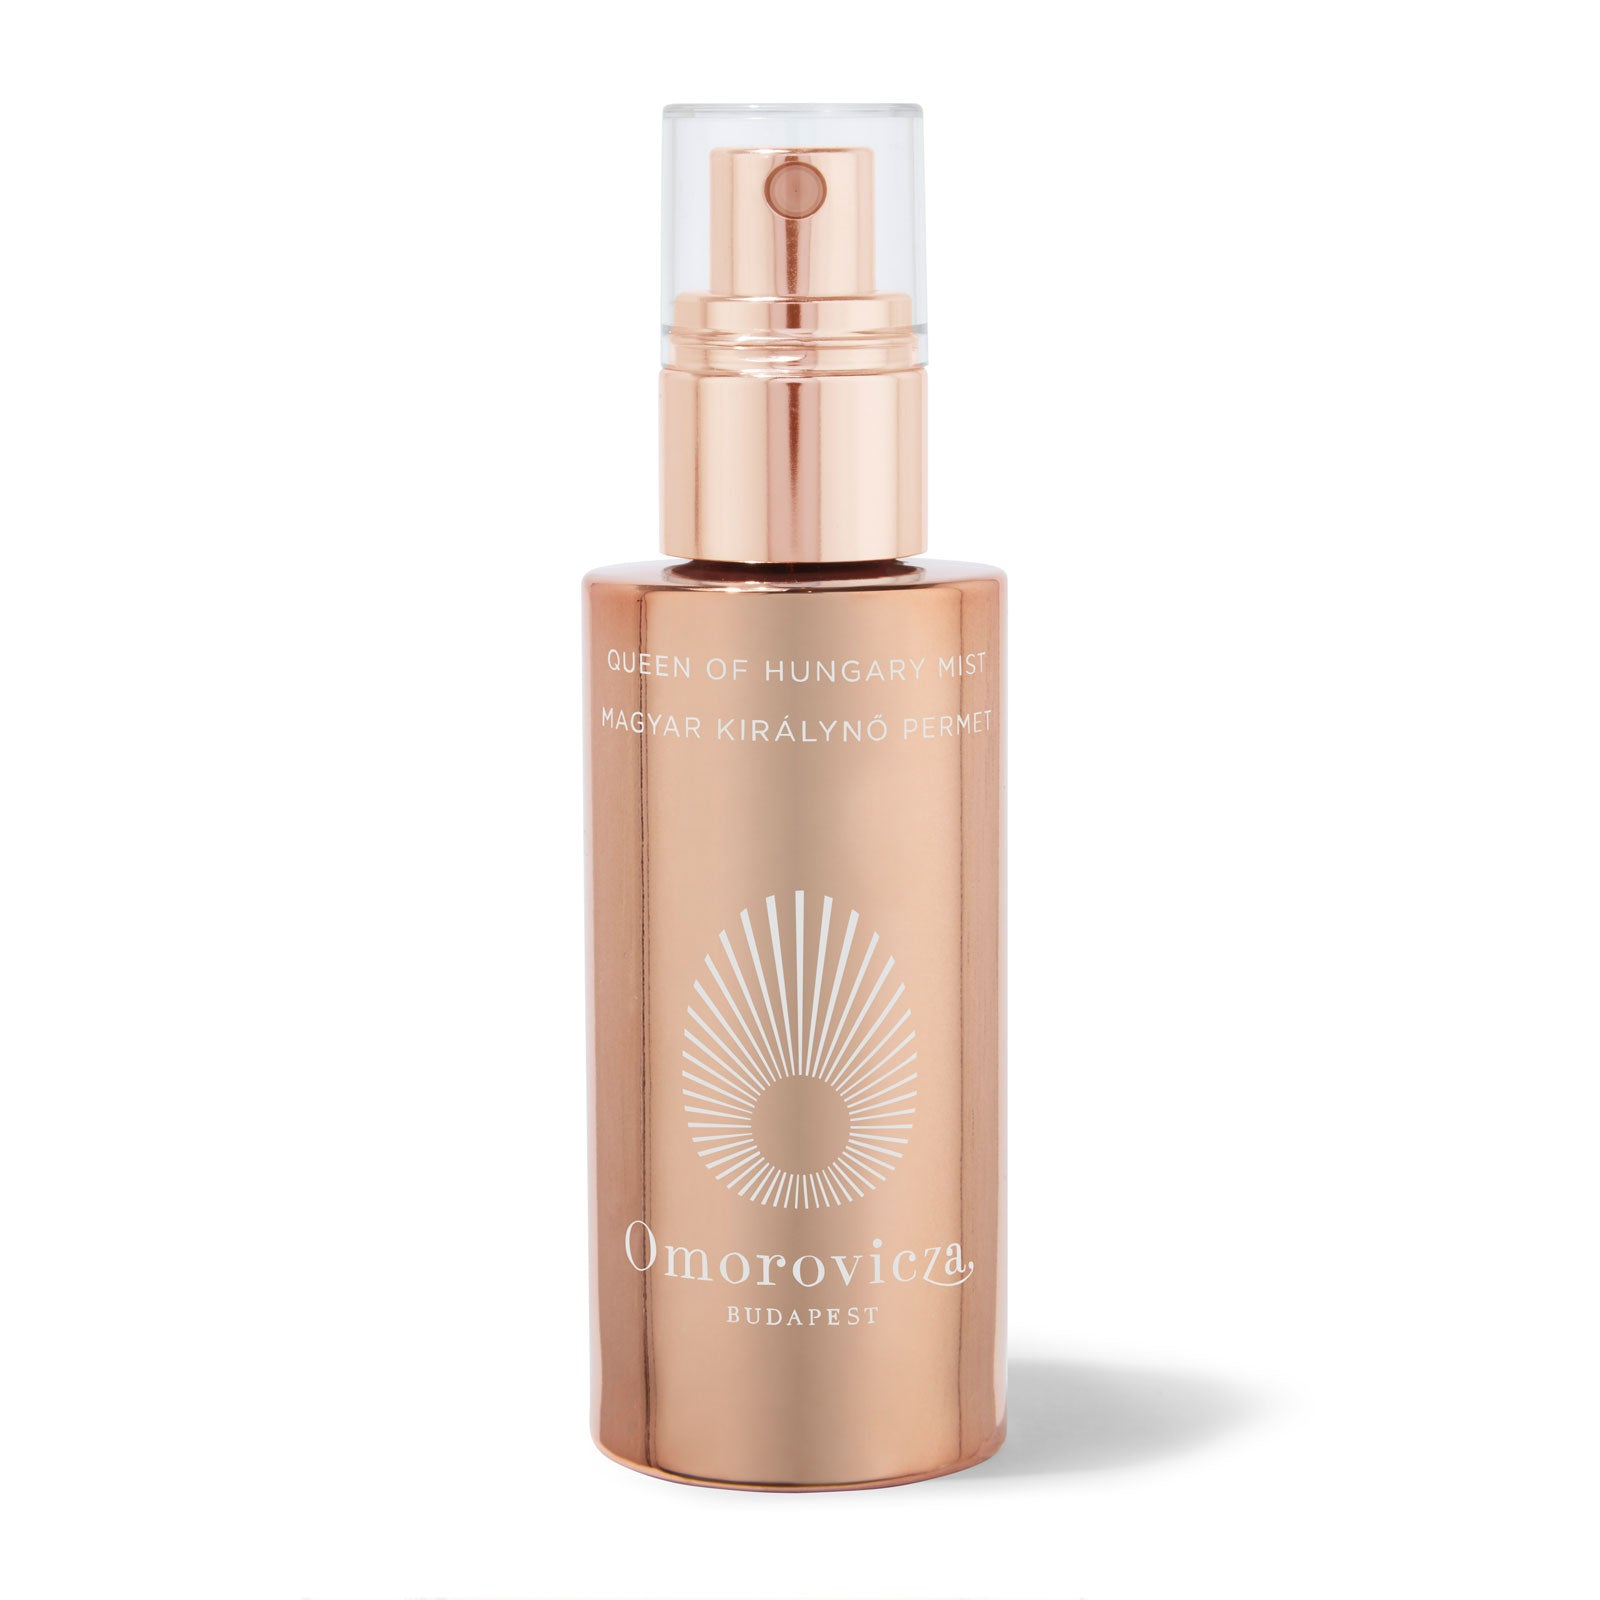 Omorovicza Queen of Hungary Mist 50ml - Rose Gold Limited Edition